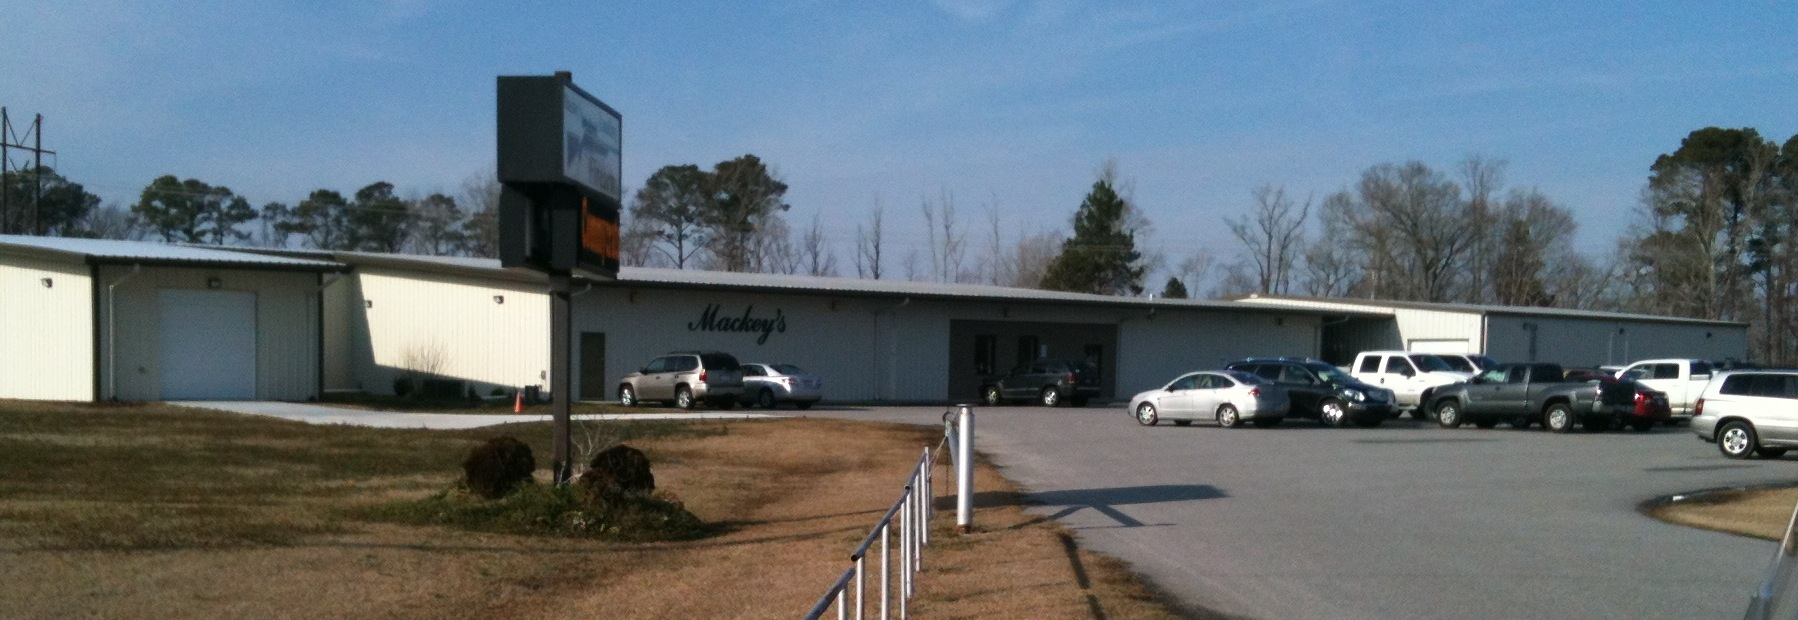 The entrance to Mackey's and the parking lot. Very unassuming, one would think it's just another commercial warehouse on the side of the highway